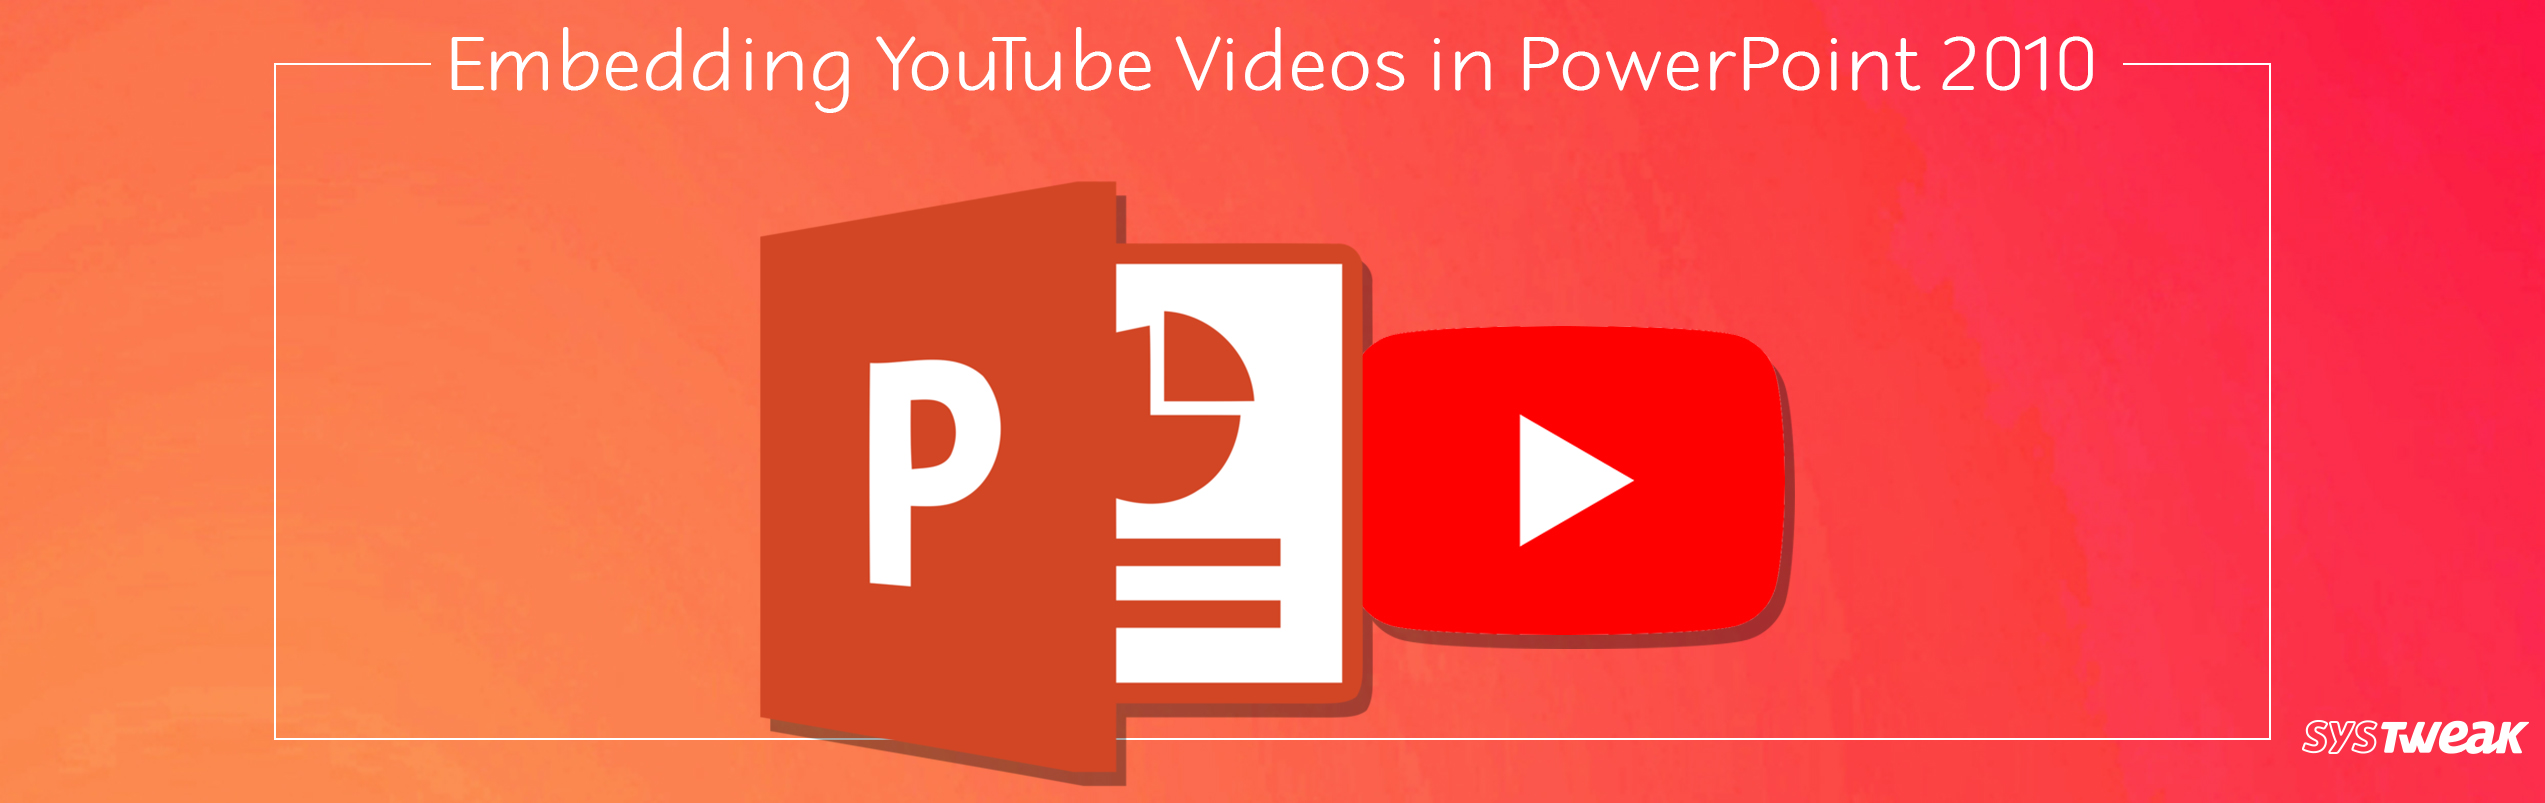 How to Embed YouTube Videos in PowerPoint 2010